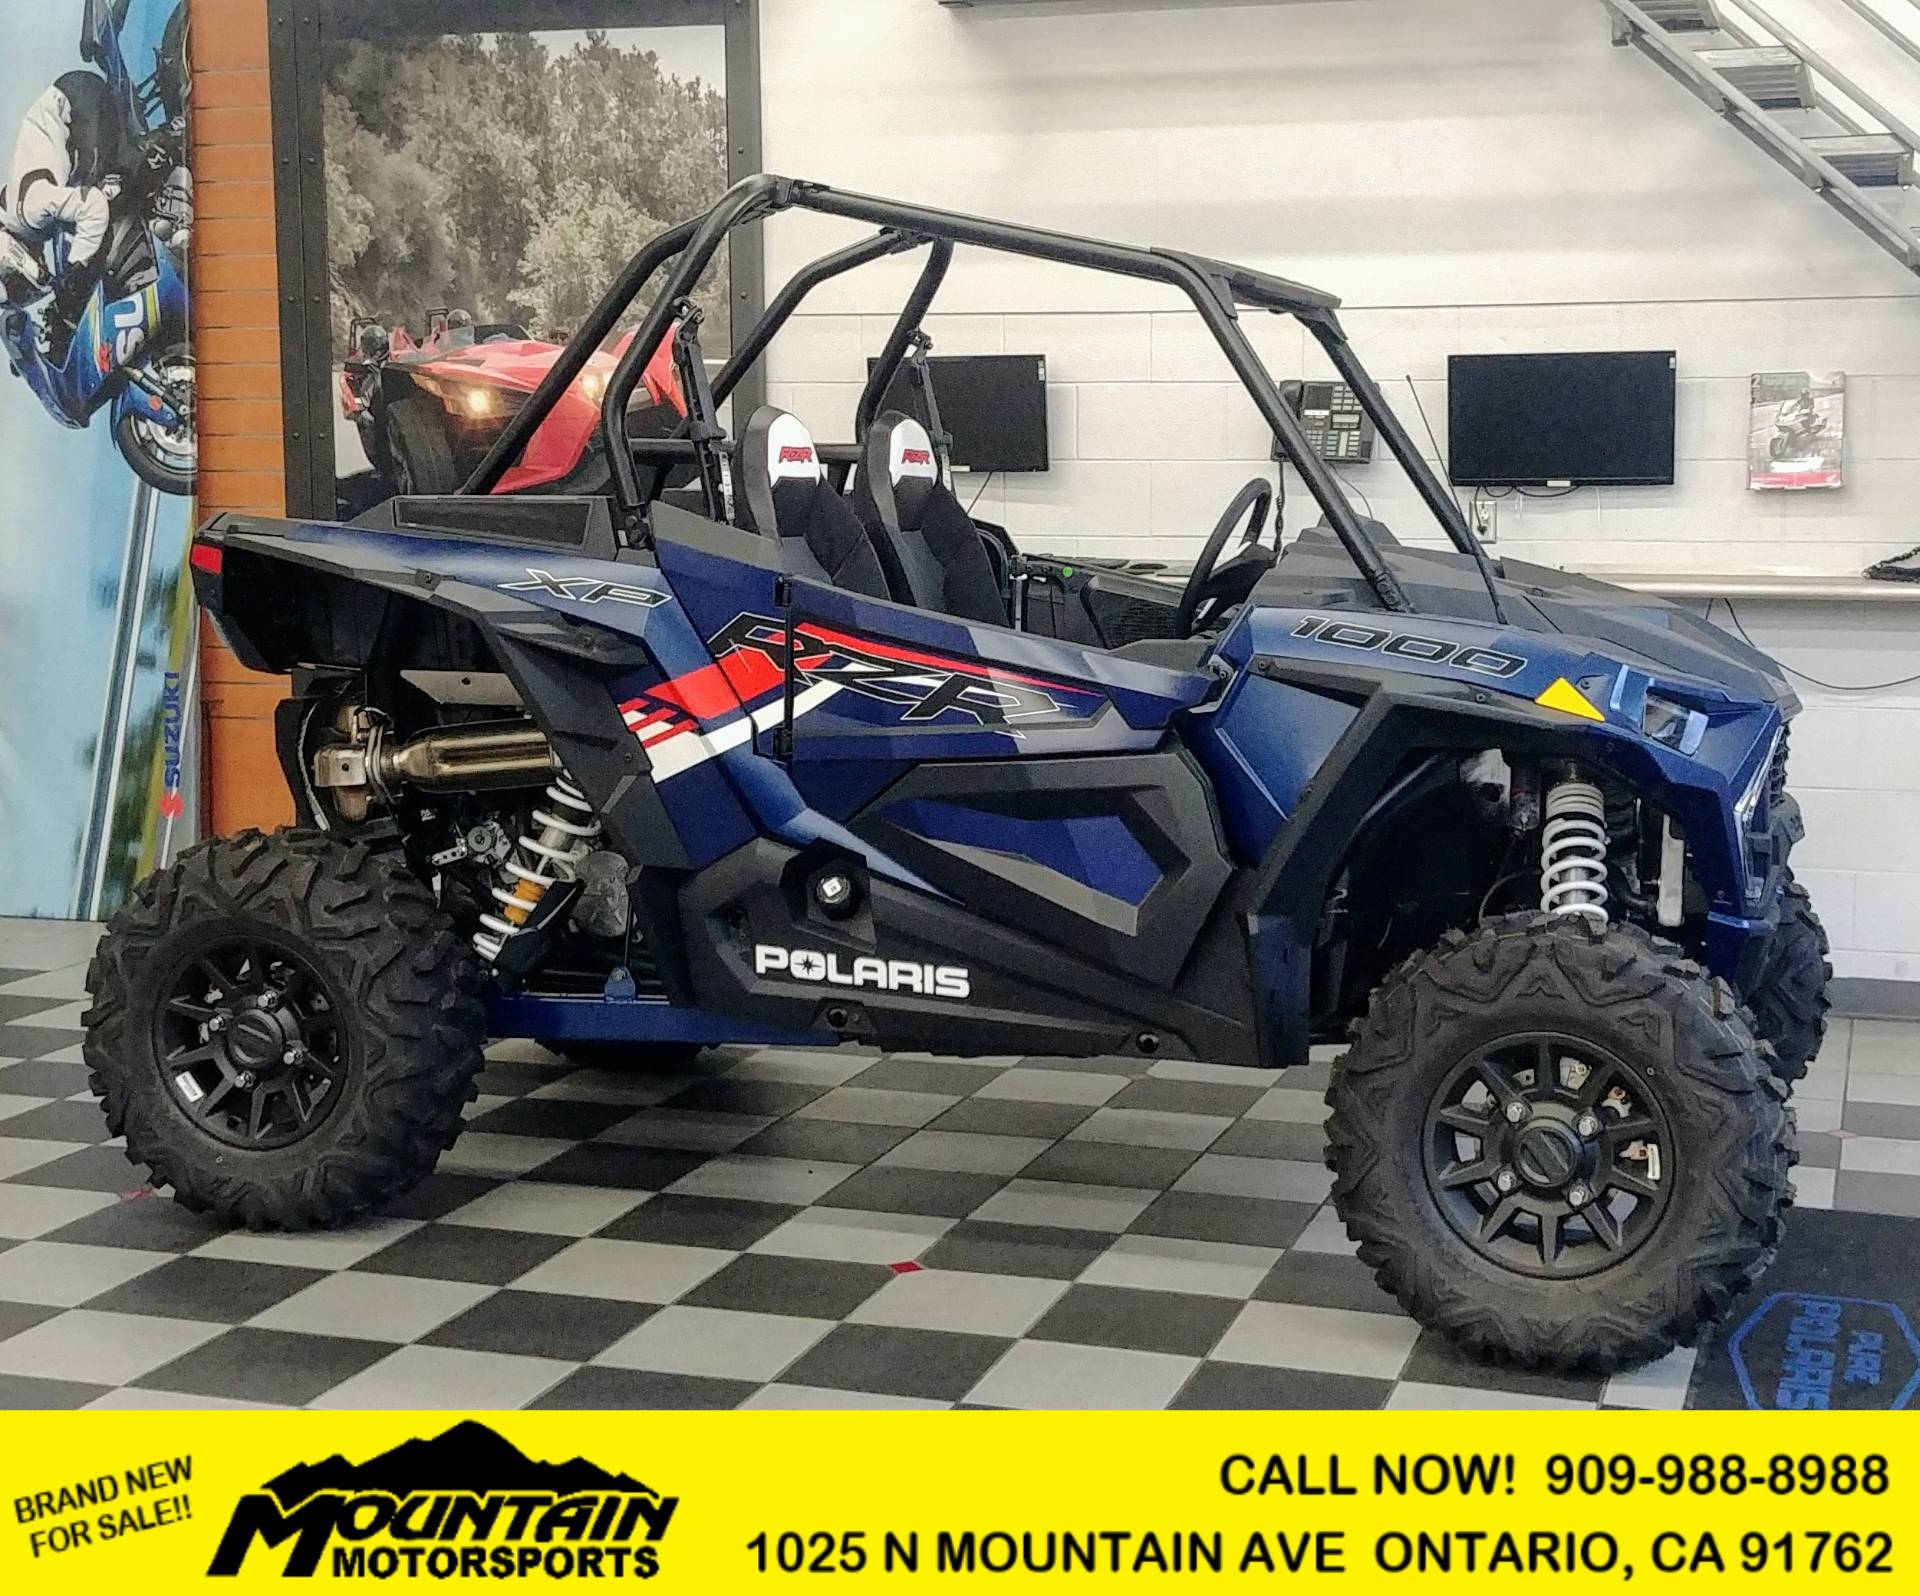 2021 Polaris RZR XP 1000 Premium in Ontario, California - Photo 1